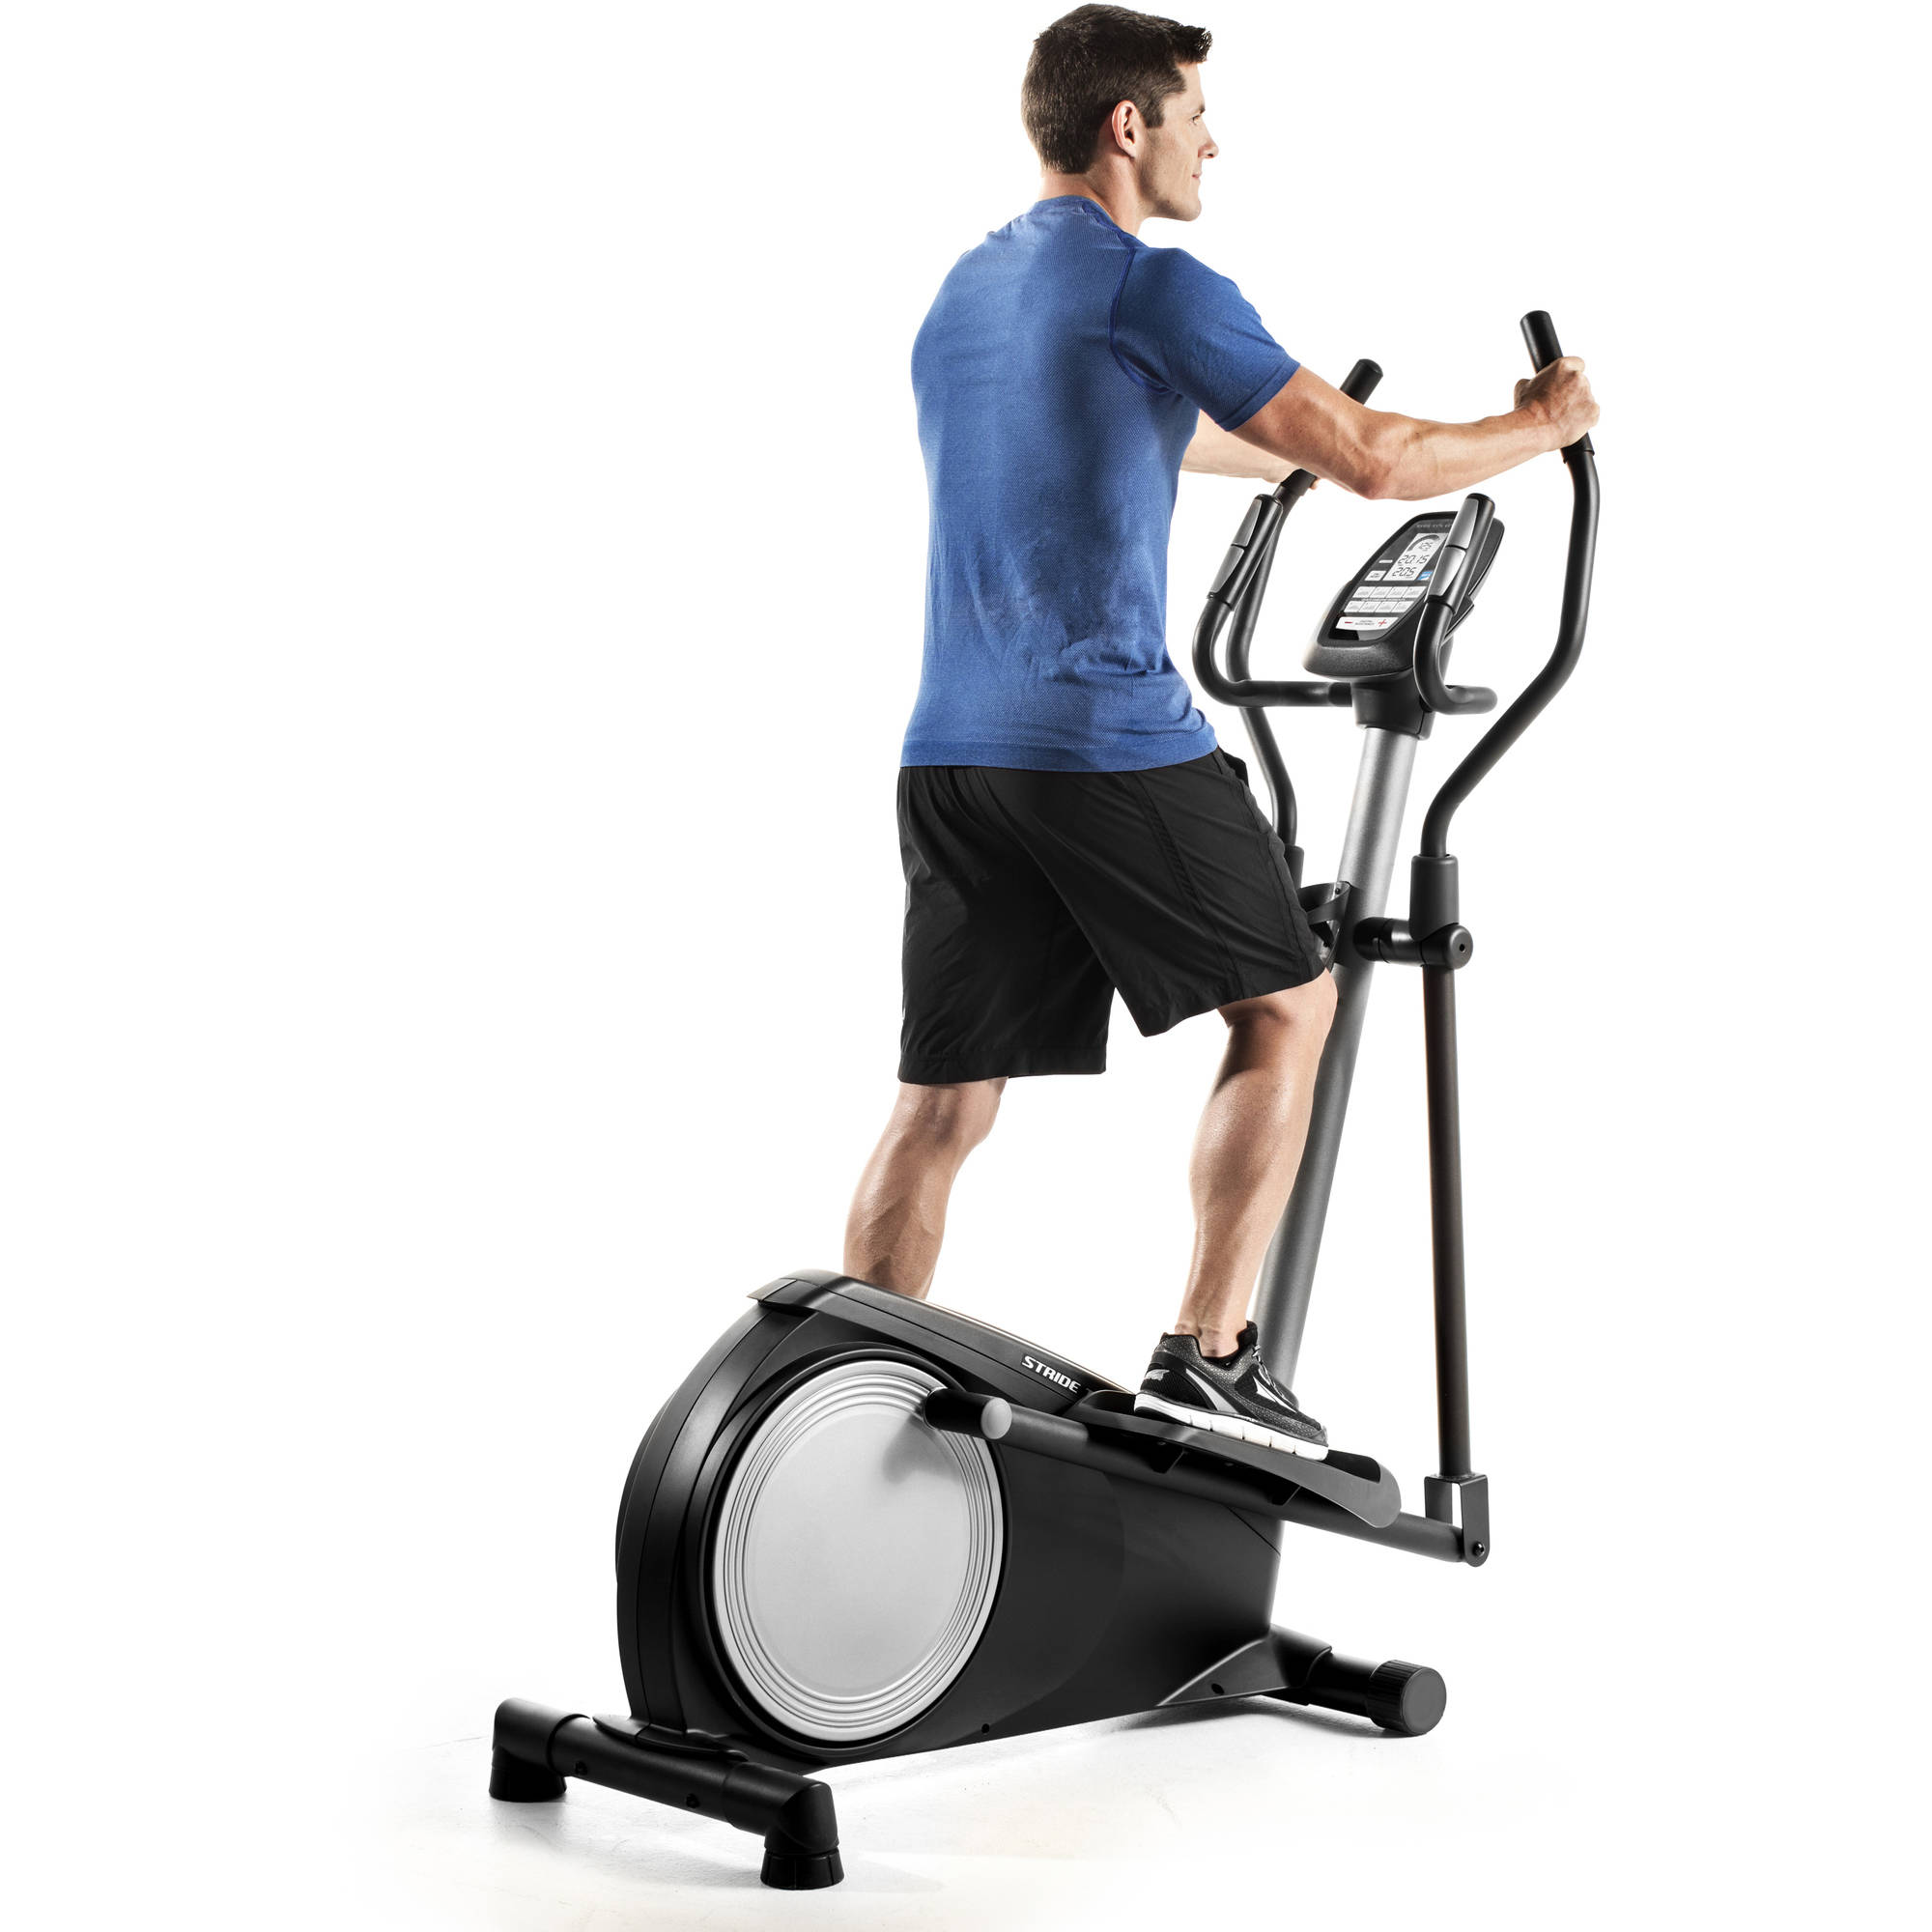 Gold's Gym Stride Trainer 380 Compact Elliptical Machine